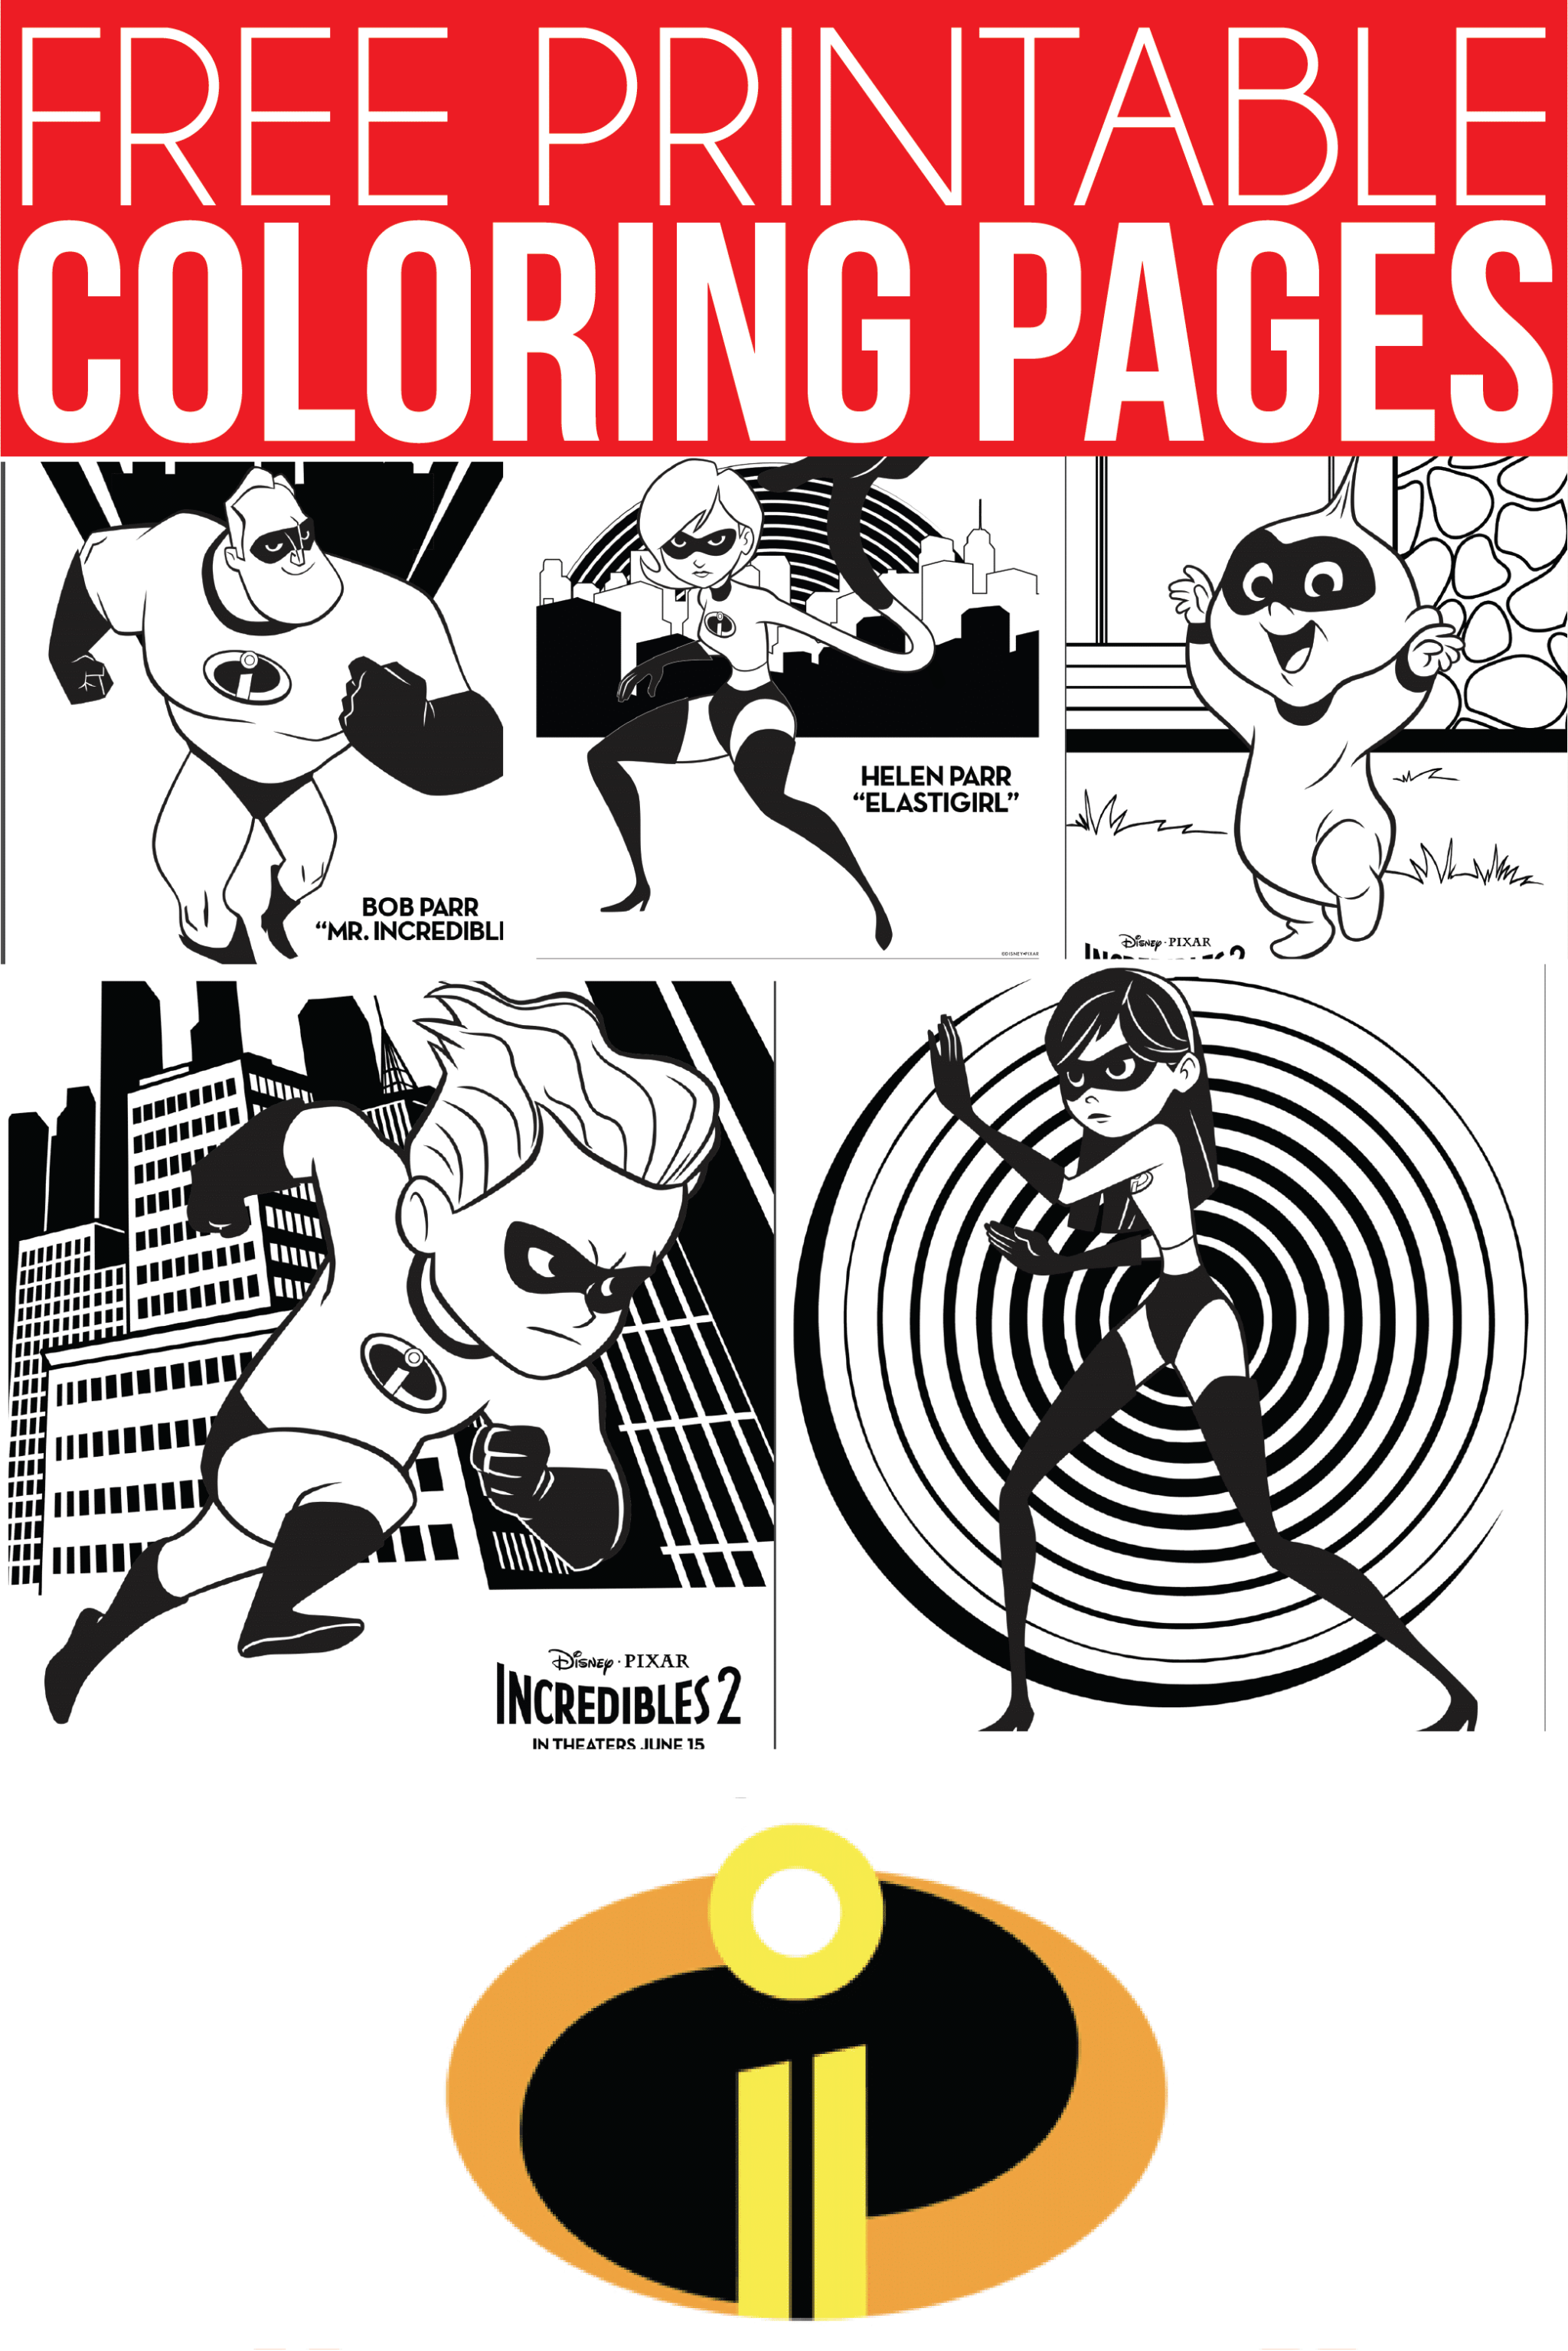 Free Printable The Incredibles Coloring Pages & Activity Sheets